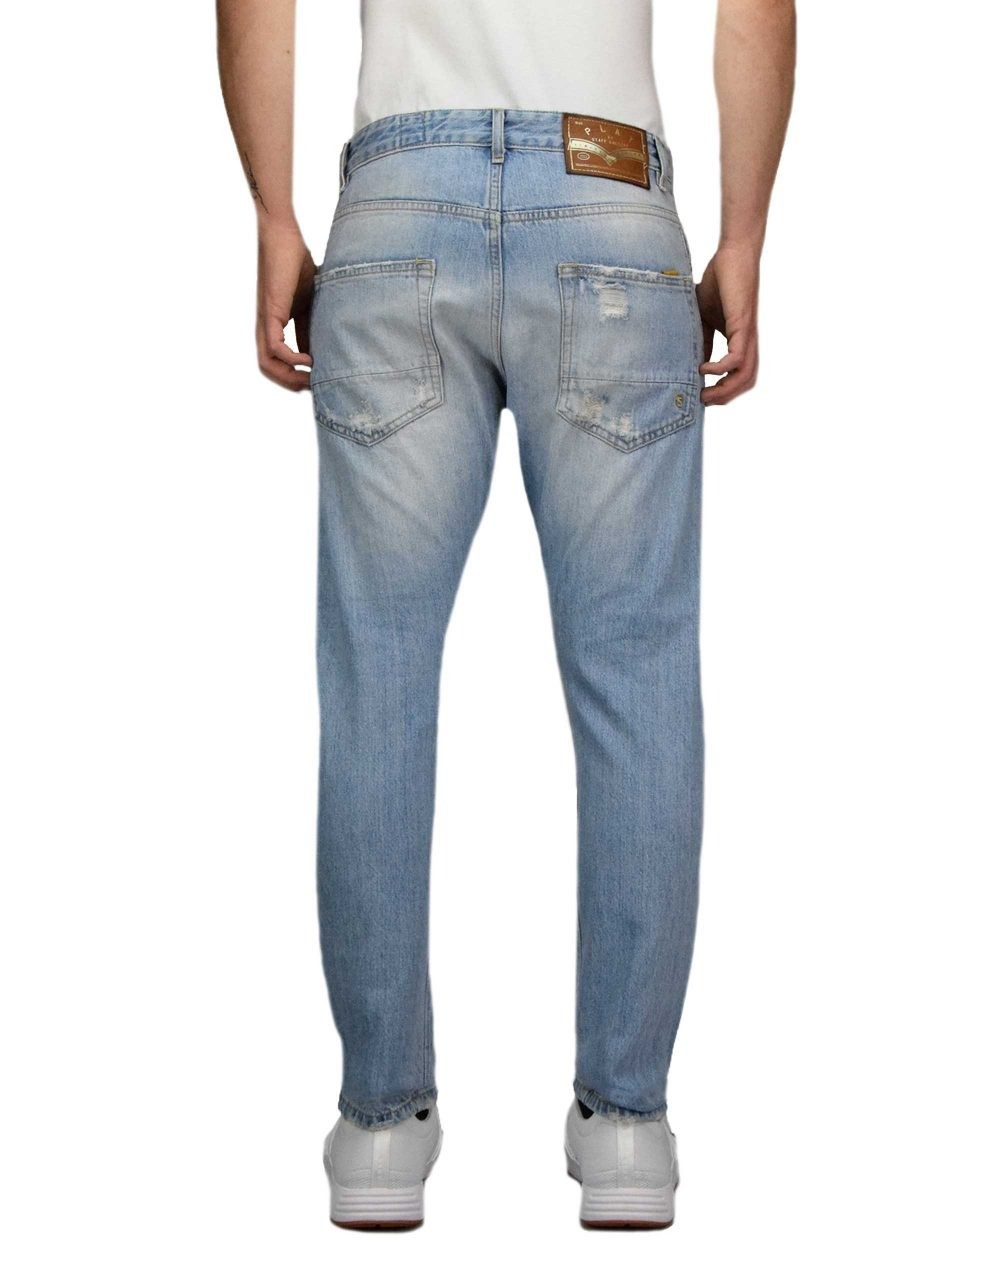 Staff Arion Loose Fit (5-835.559.PS4.043) Blue Denim Bleach